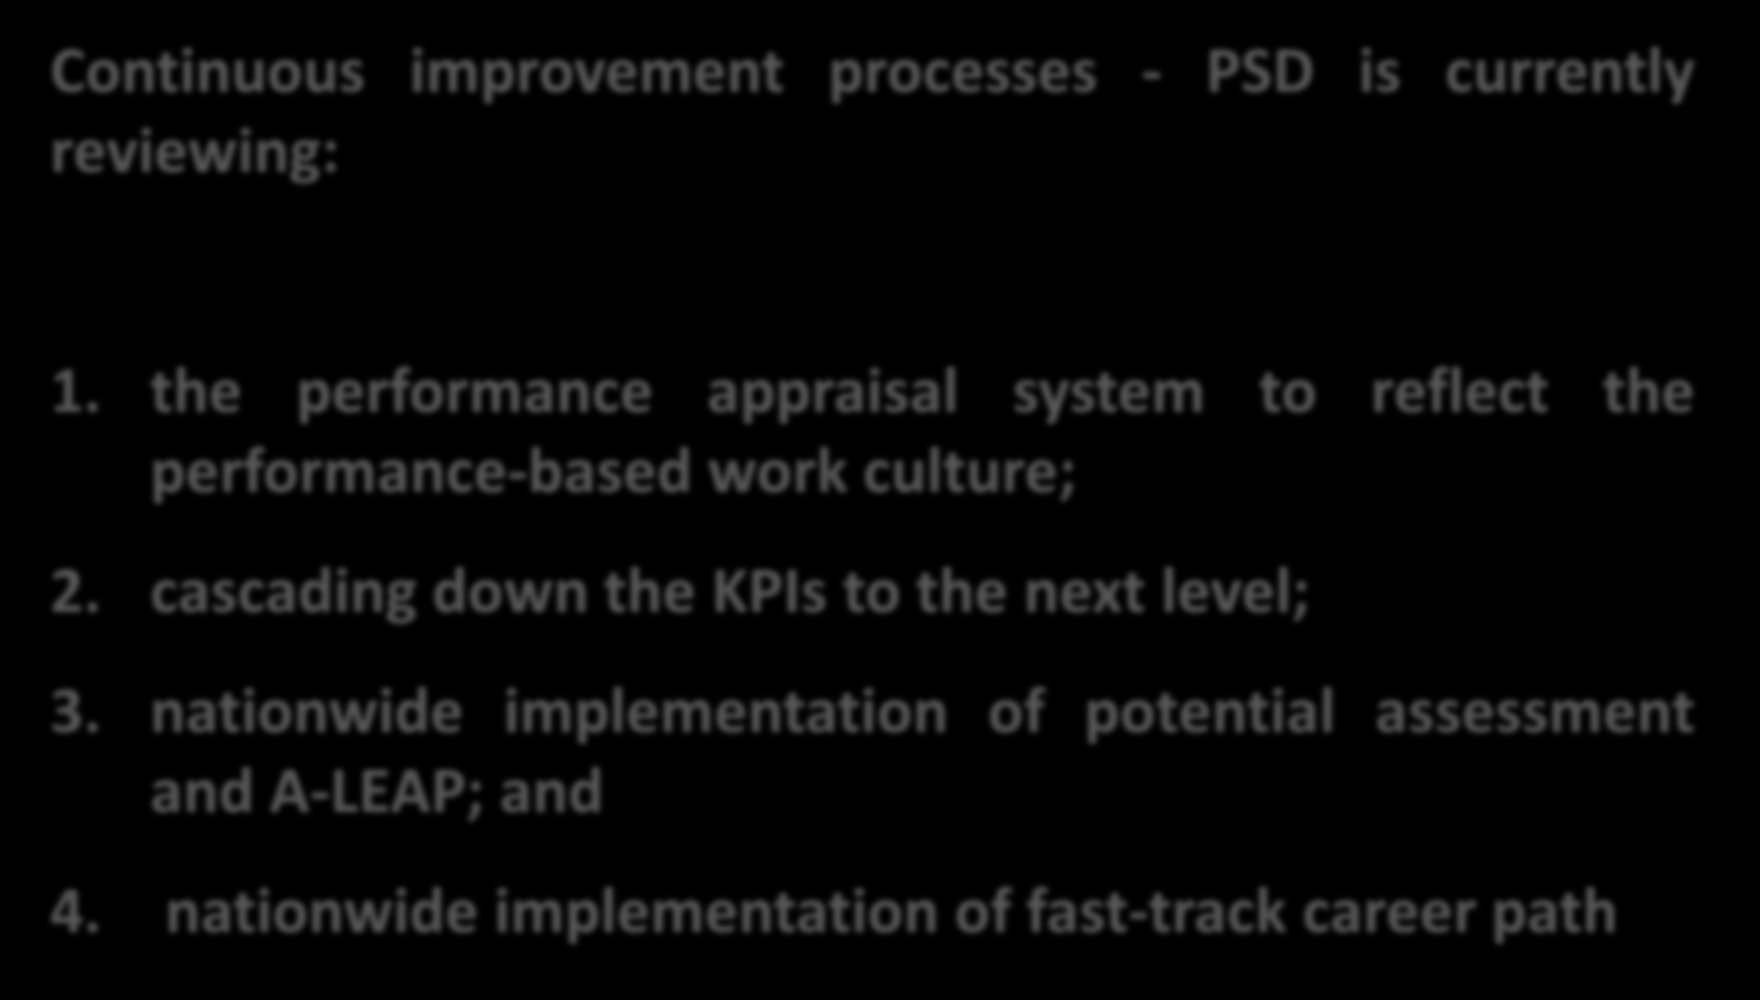 THE WAY FORWARD Continuous improvement processes - PSD is currently reviewing: 1. the performance appraisal system to reflect the performance-based work culture; 2.